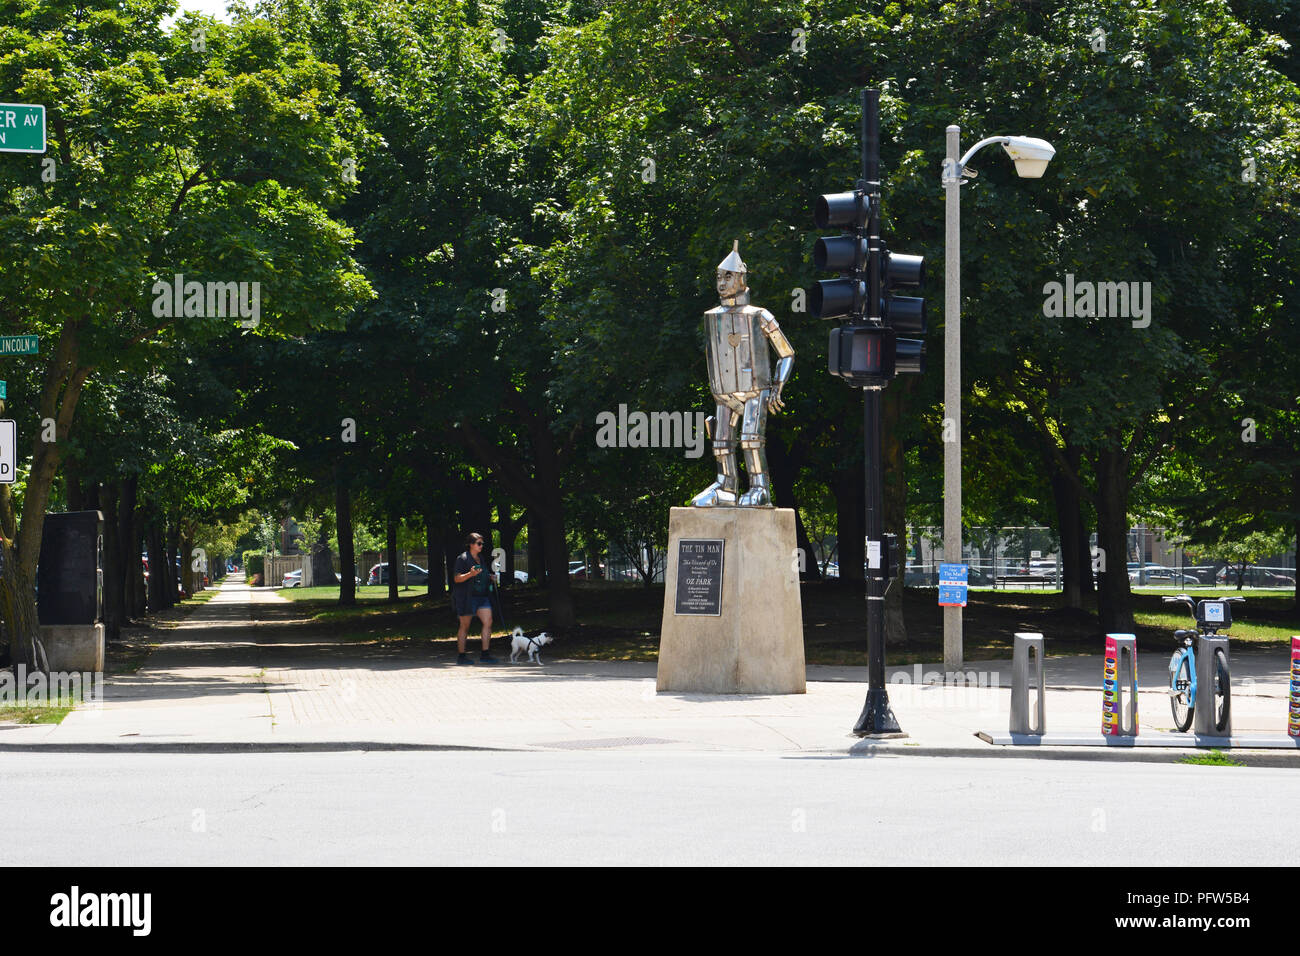 The Tin Man statue greets visitors at the corner of Webster and Lincoln Avenues at the entrance of Oz Park in Chicago's Lincoln Park neighborhood. - Stock Image